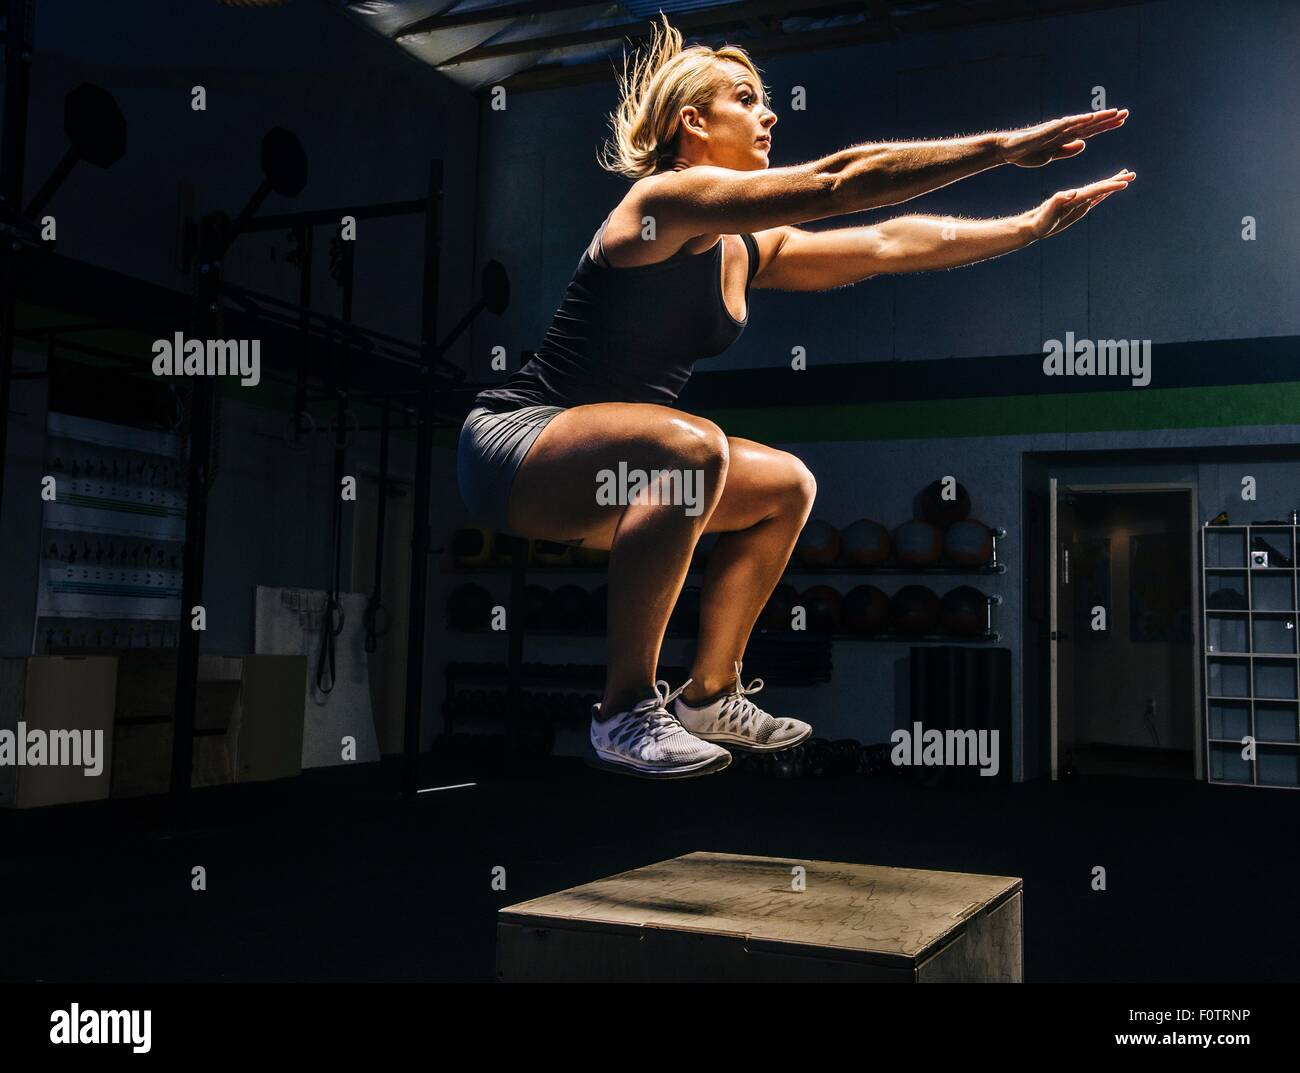 Young woman jumping mid air on gym box with arms reaching out - Stock Image